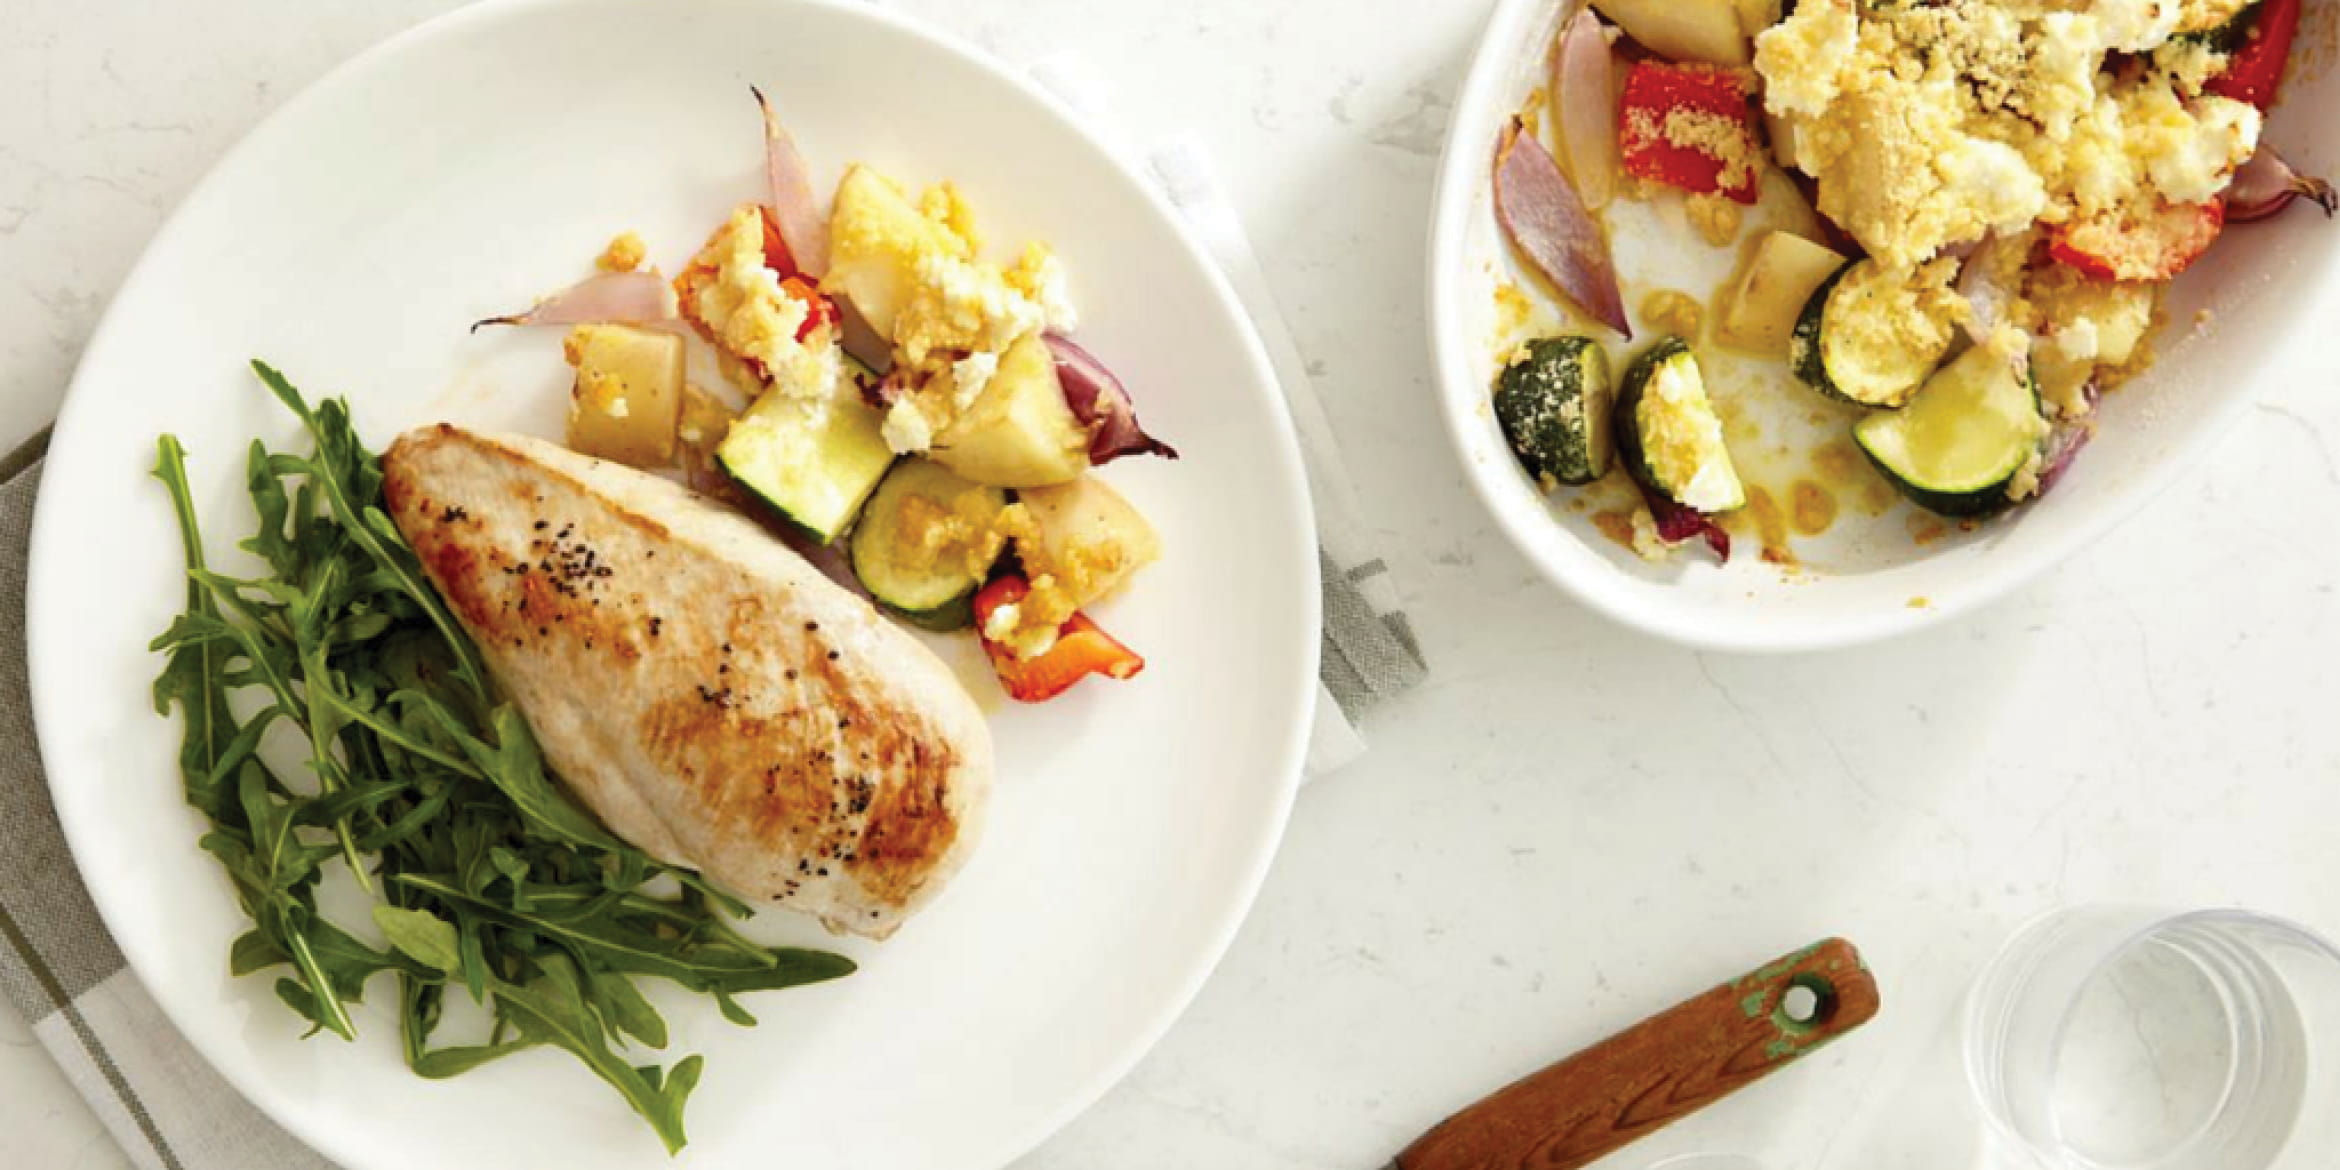 CHICKEN BREASTS WITH VEGETABLE CRUMBLE